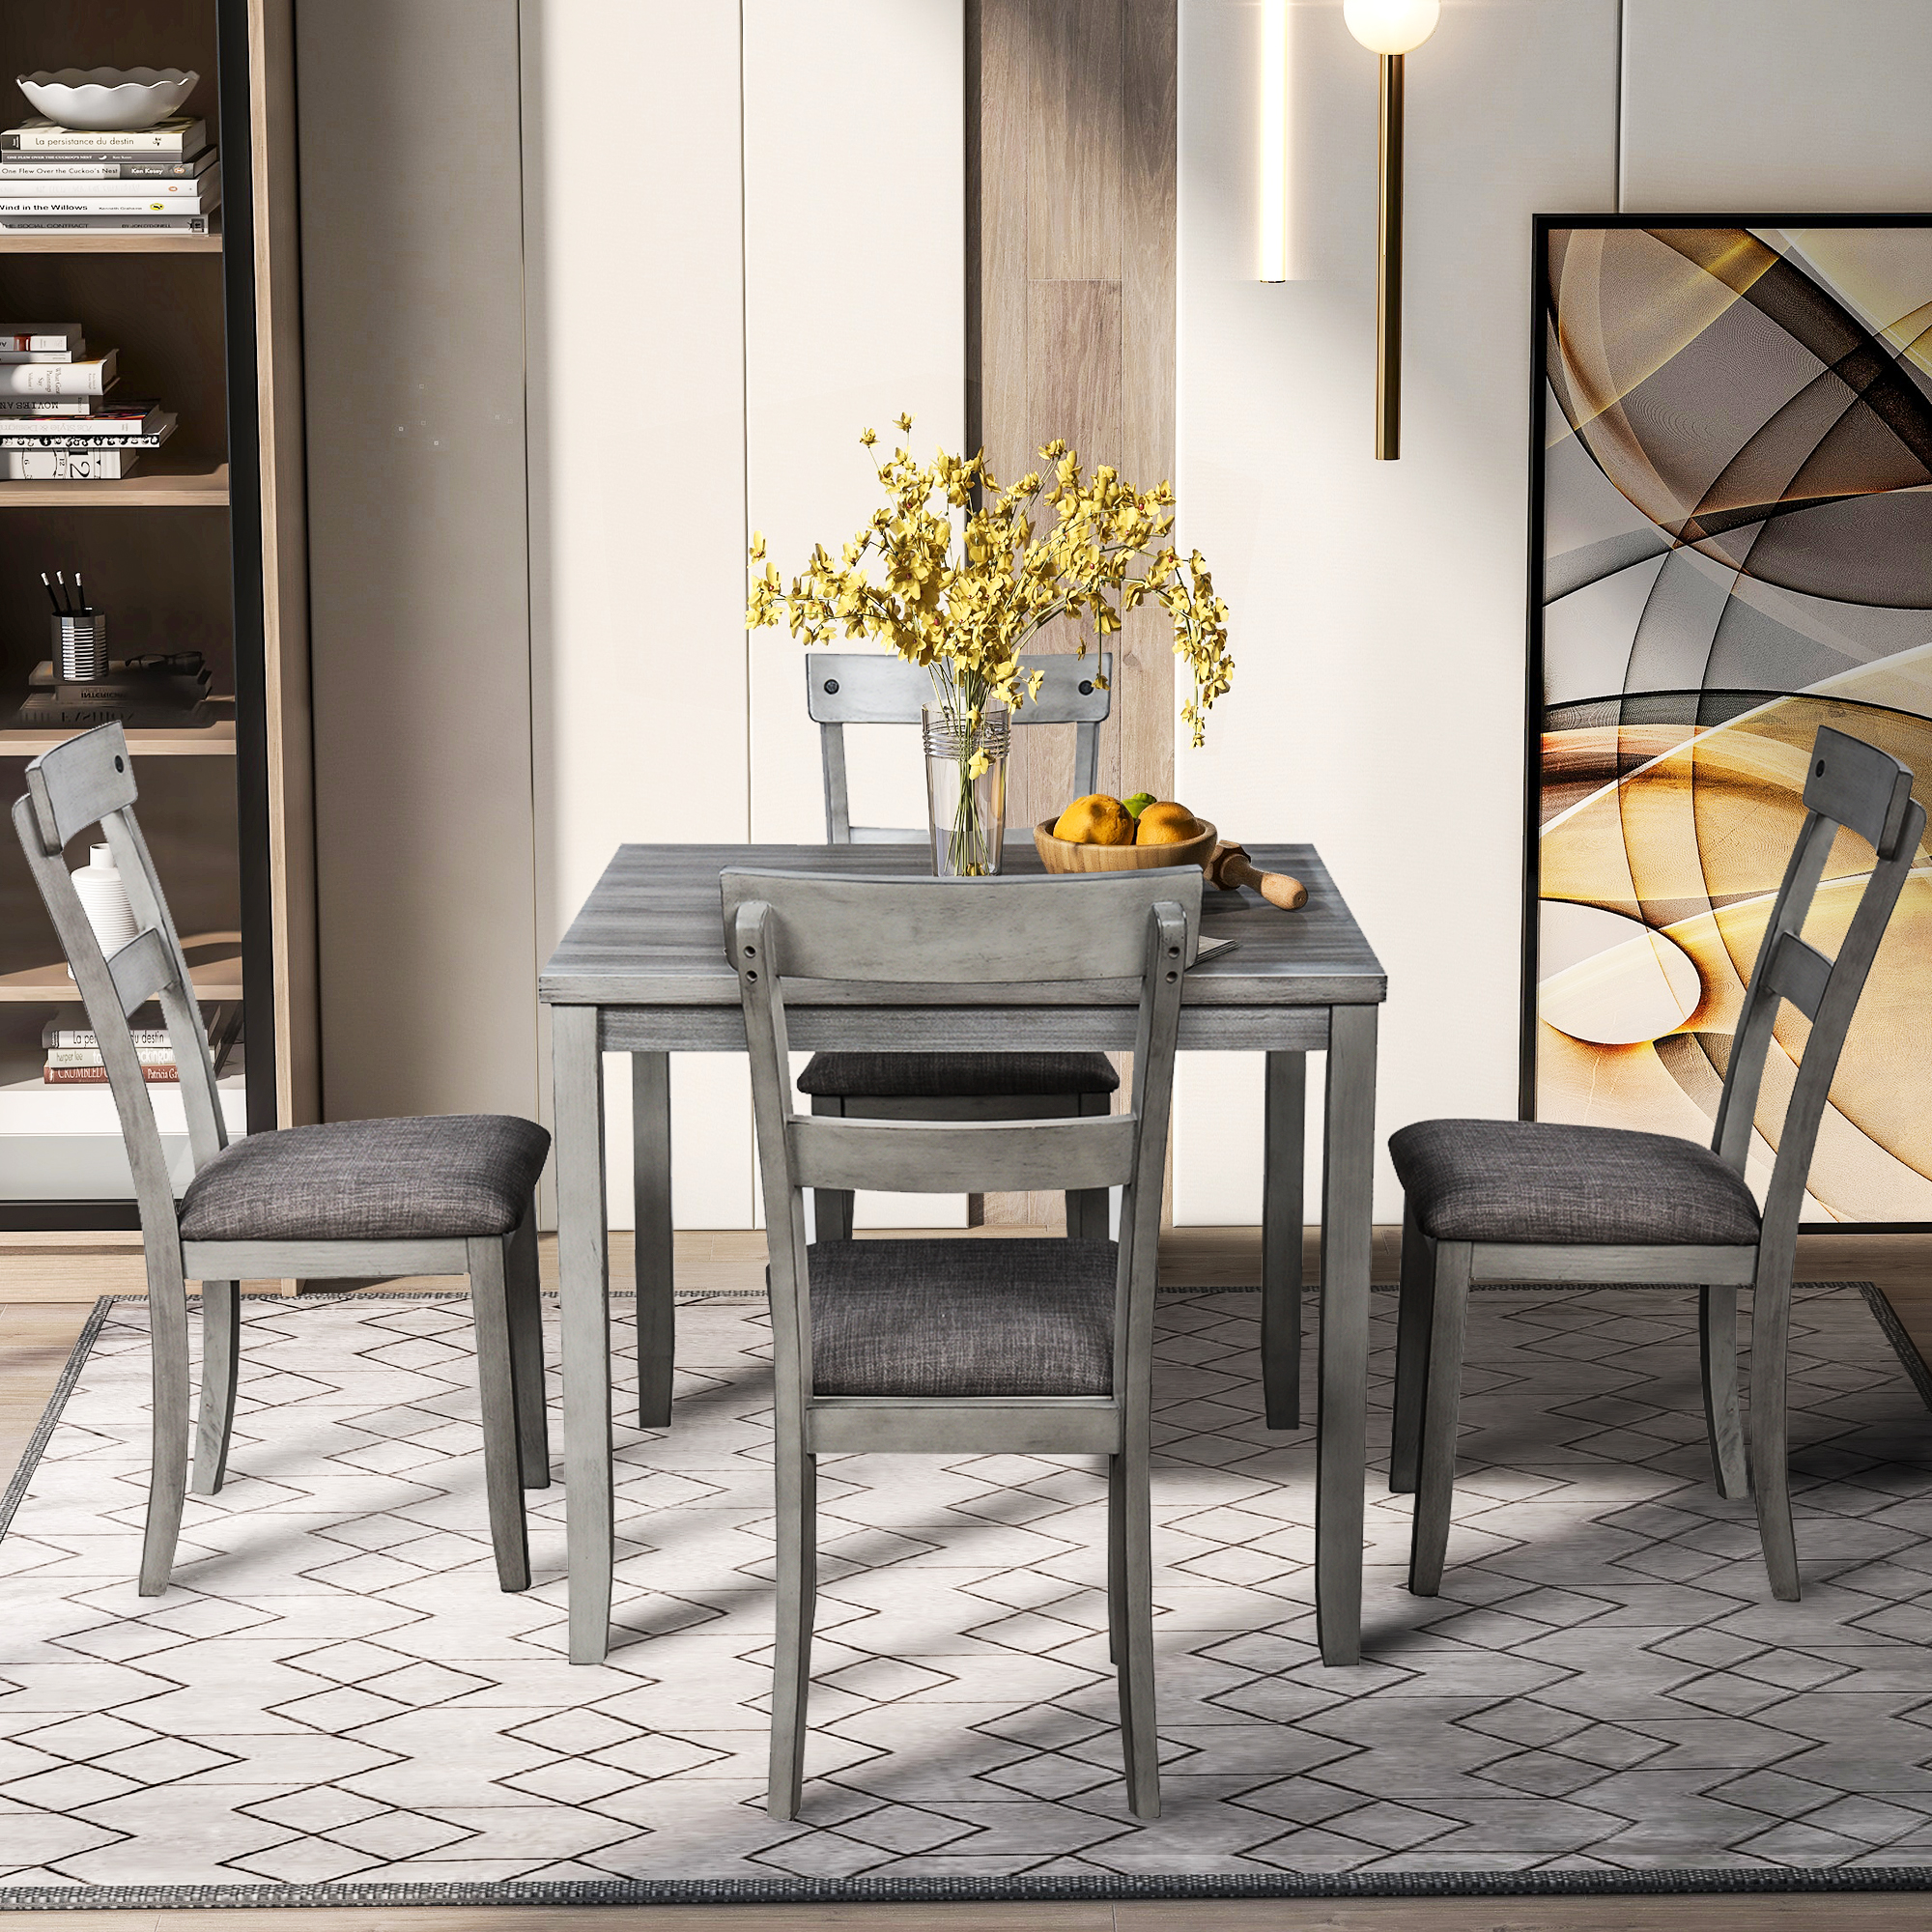 Kitchen Table with Chair Set for 4, BTMWAY Square ...